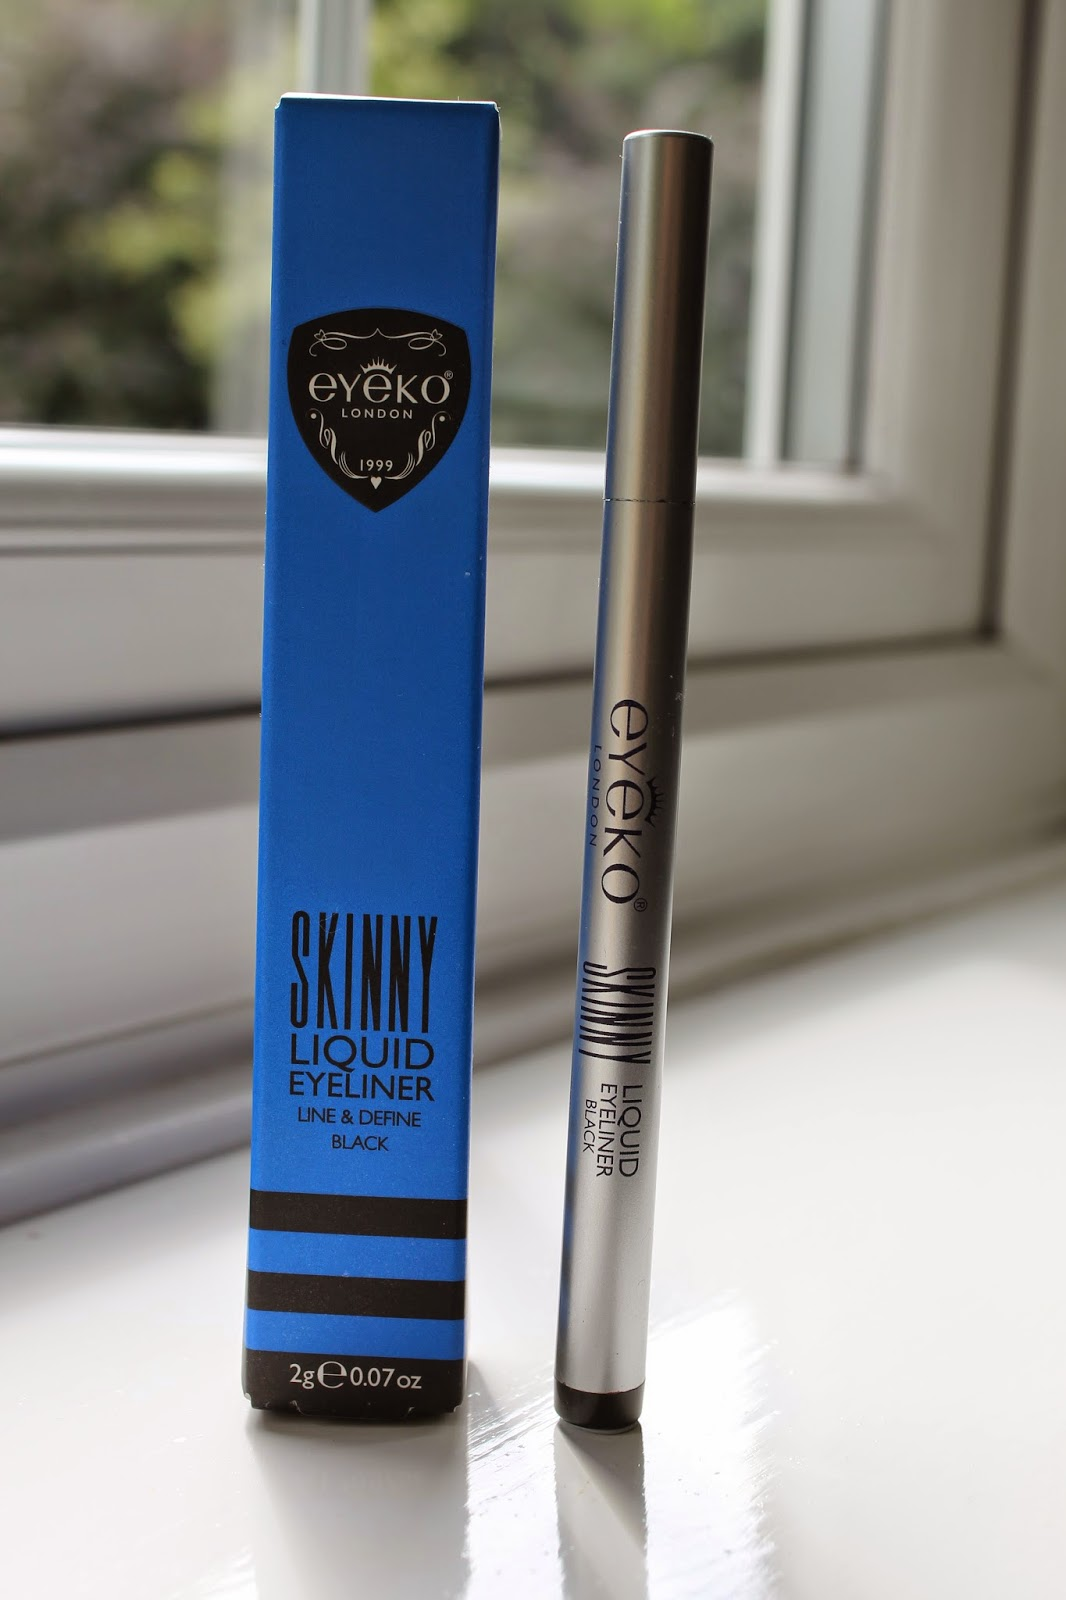 Eyeko Skinny Liquid Eyeliner Beauty Review